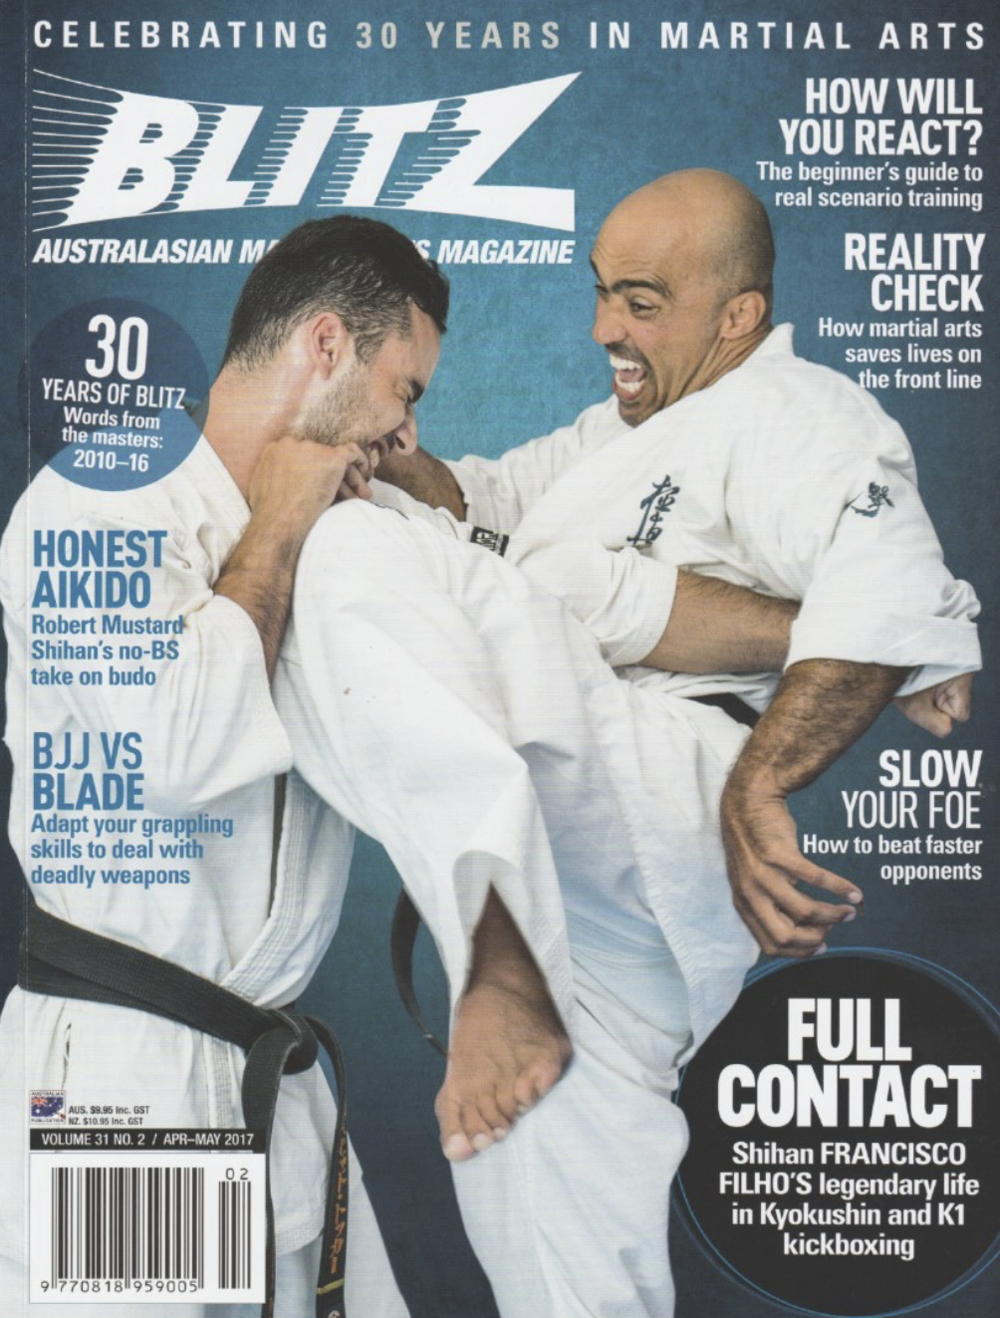 Read article with Shihan Filho